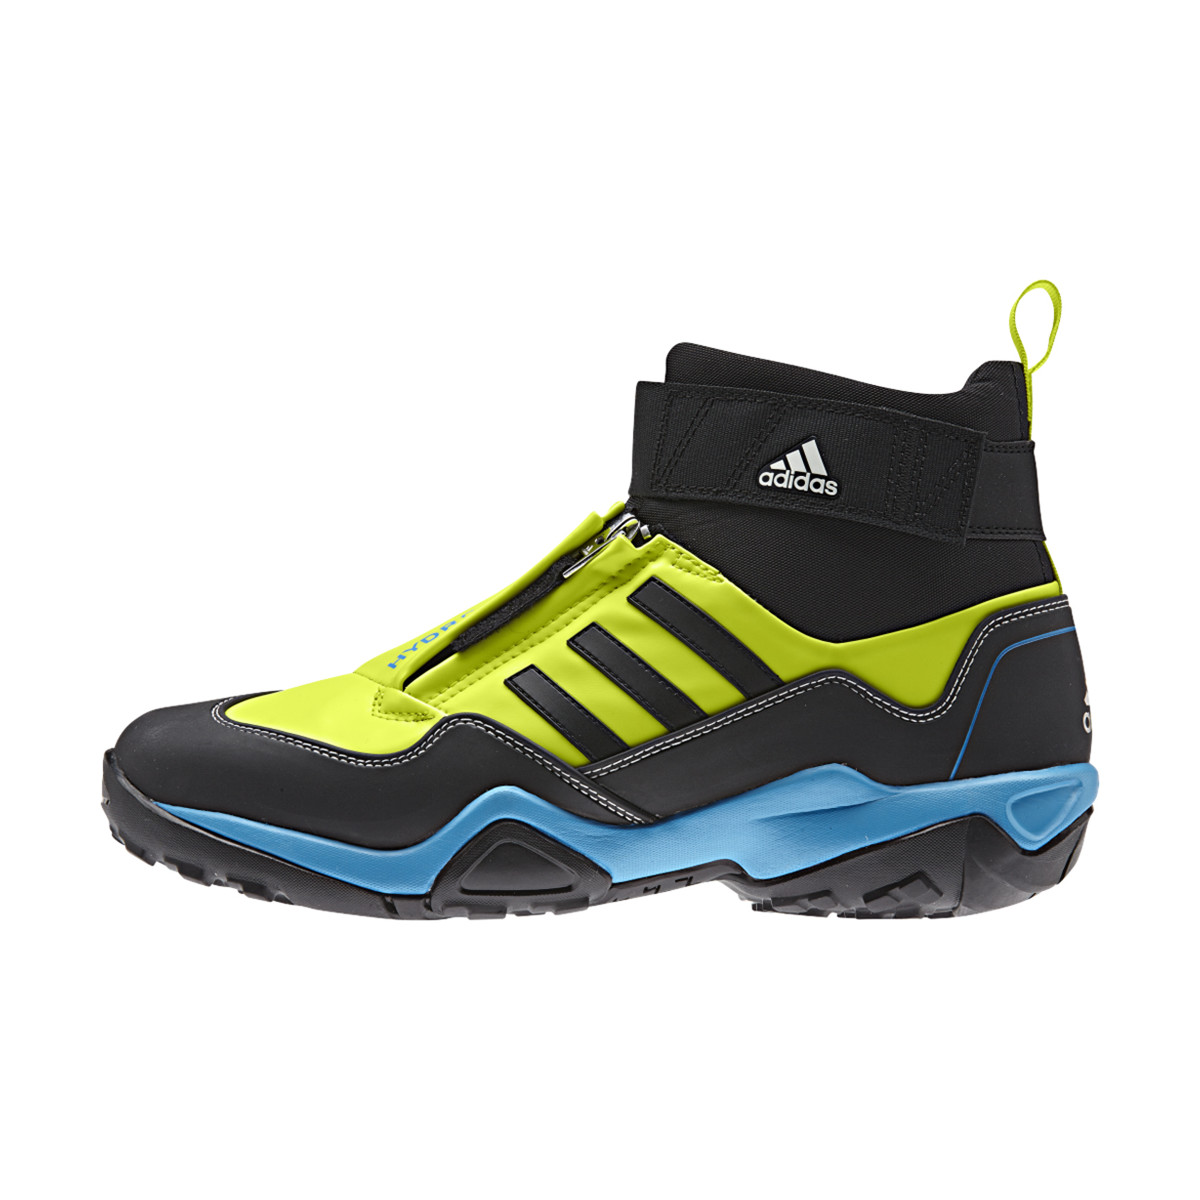 photo: Adidas Hydro Pro water shoe